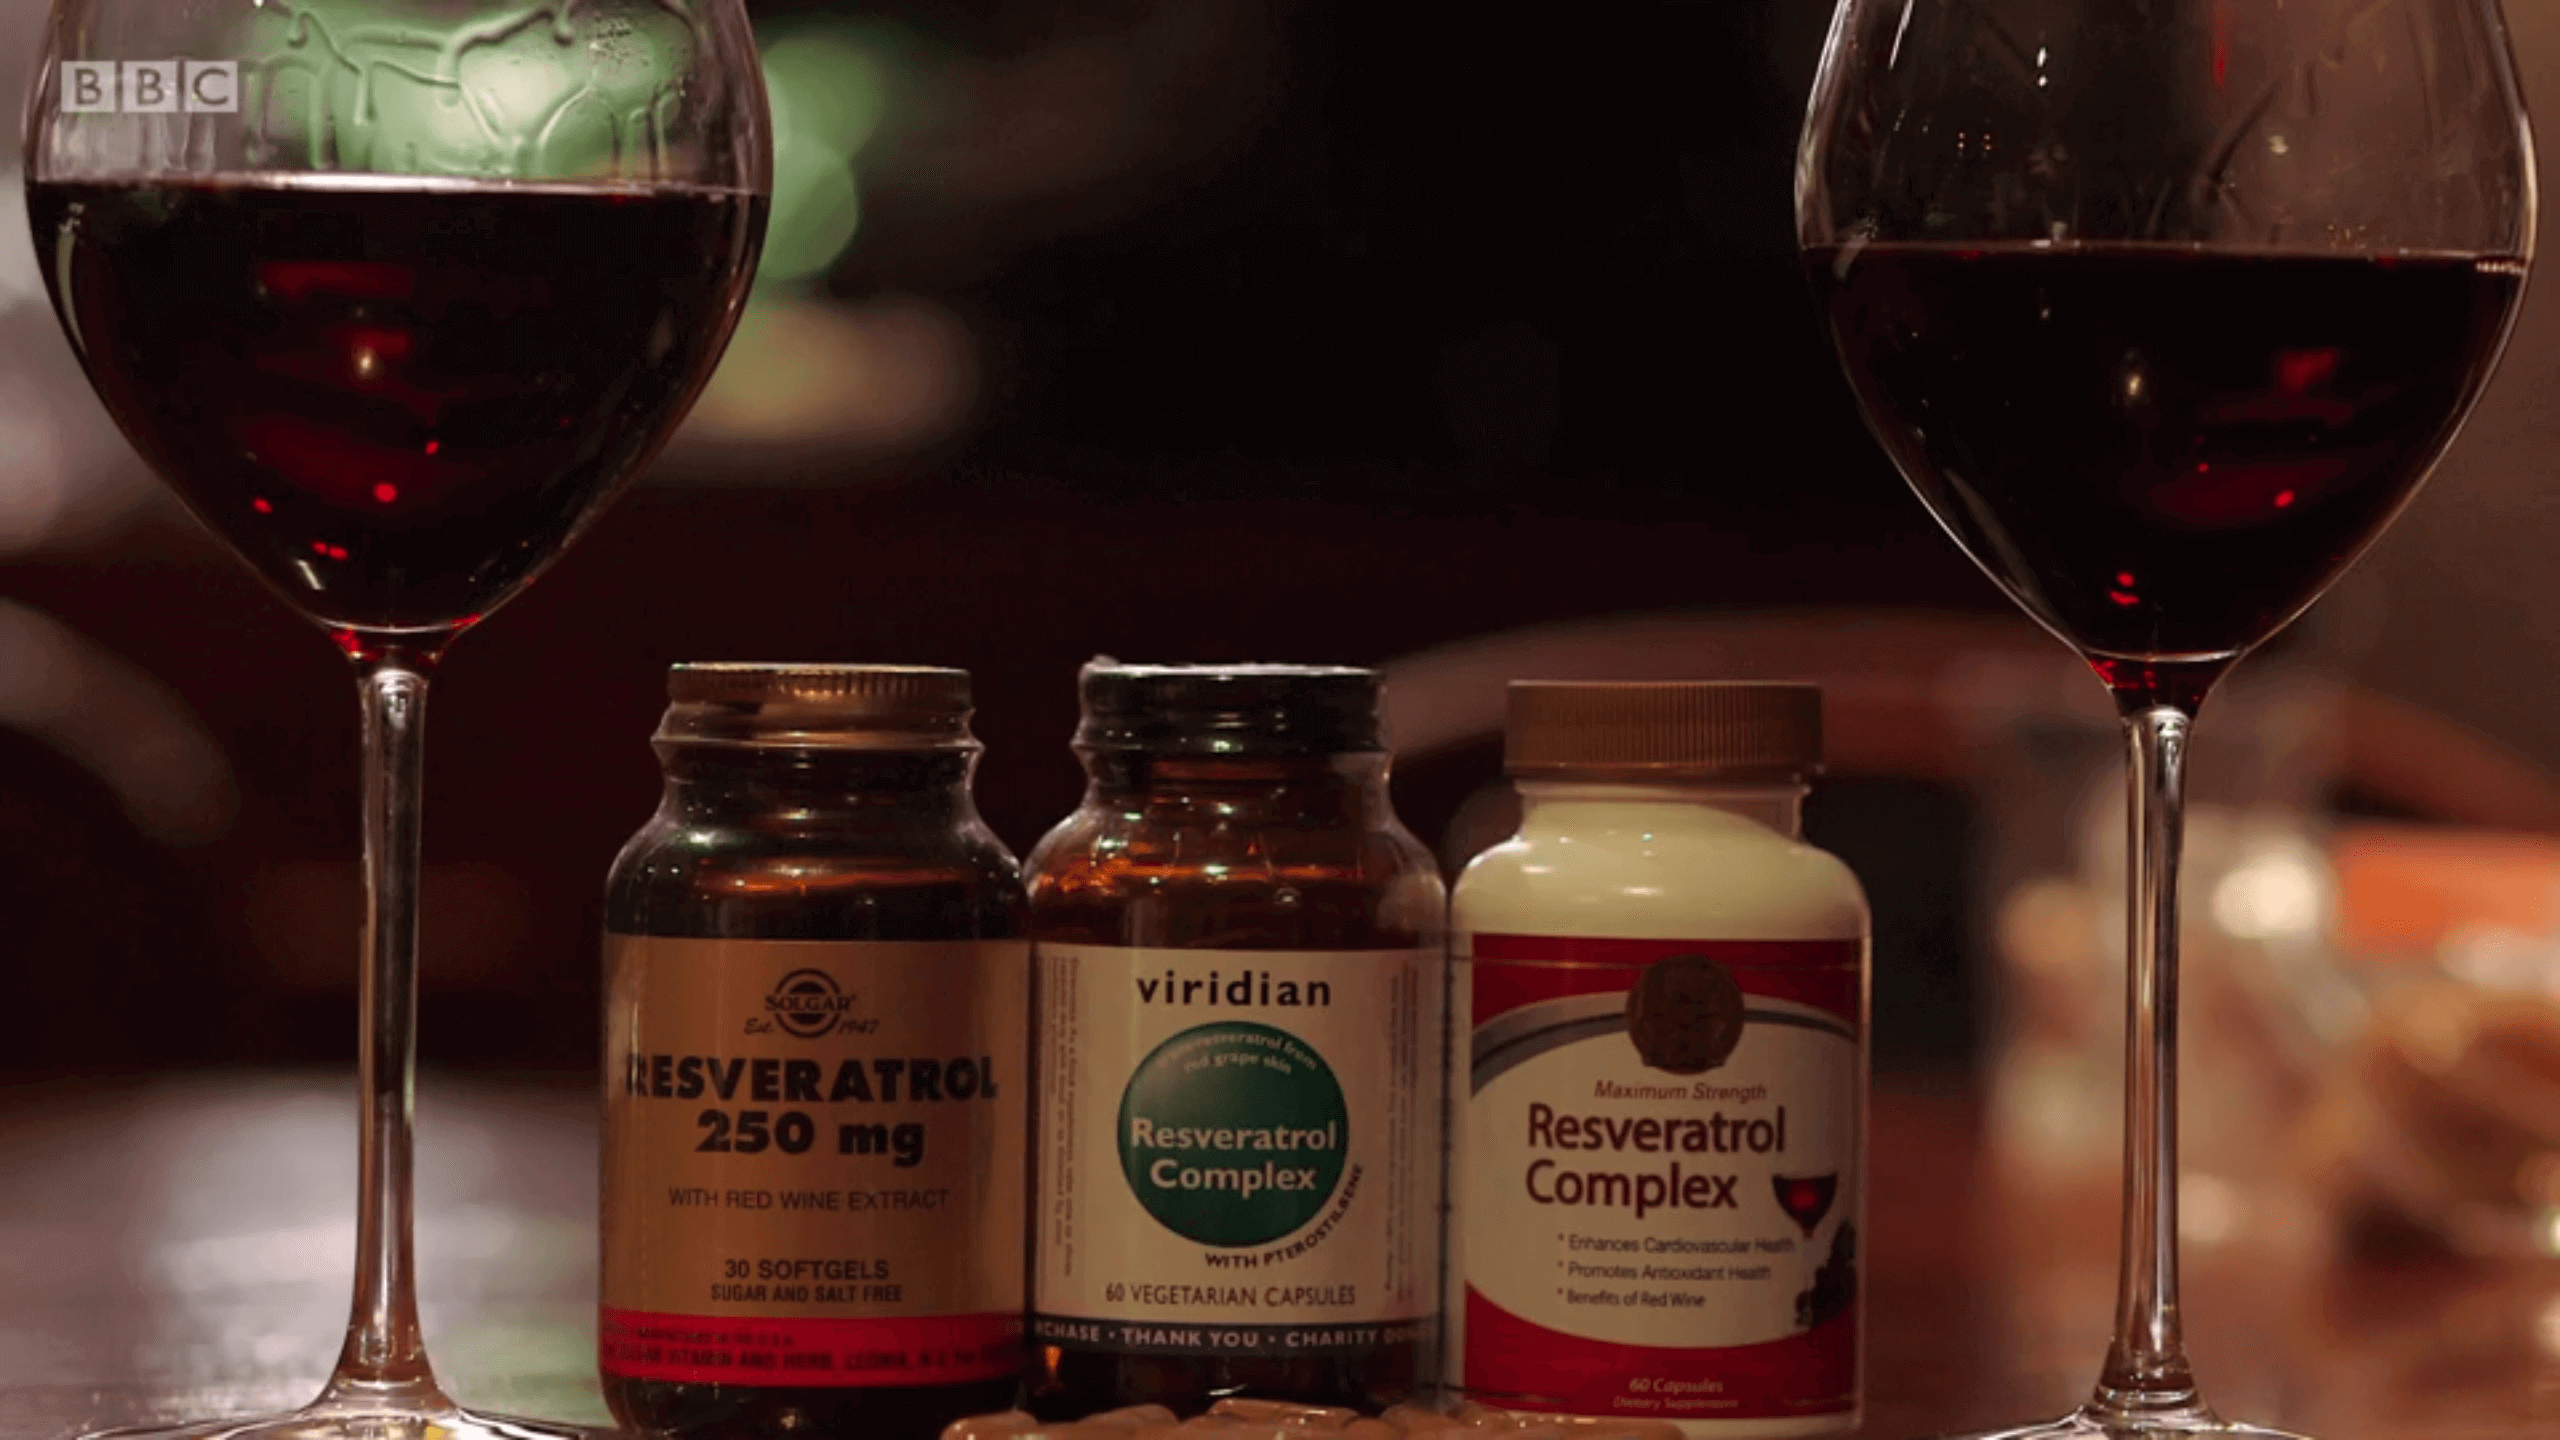 TV appearance for Viridian Nutrition's Resveratrol Complex